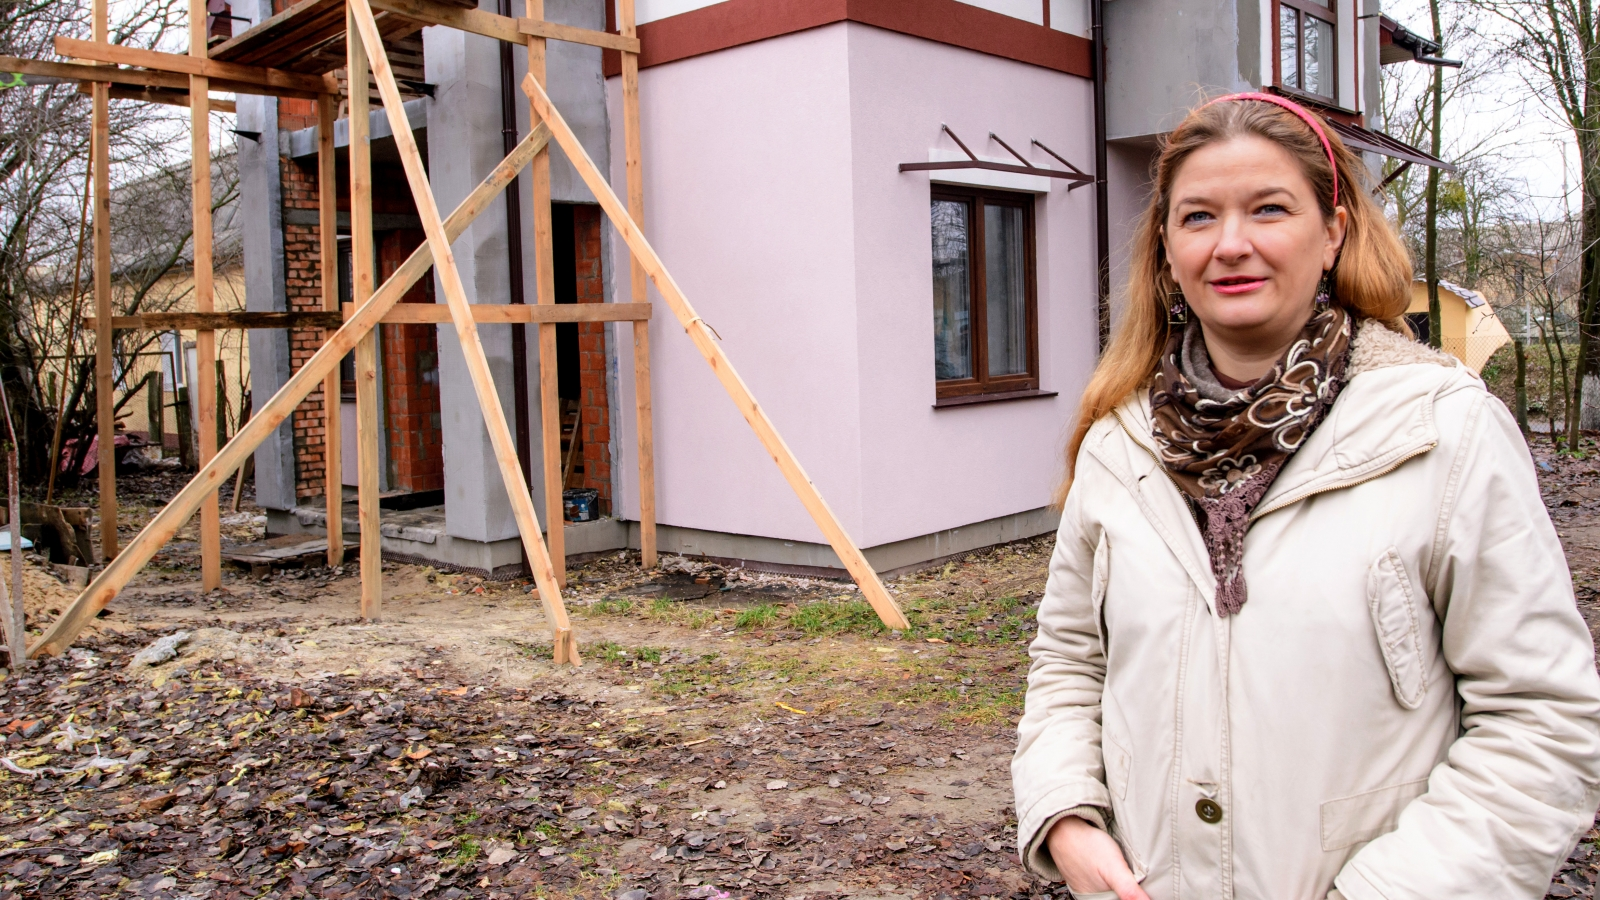 Olena Pylska, a participant of the IQ energy programme, opted for an energy-efficient house.